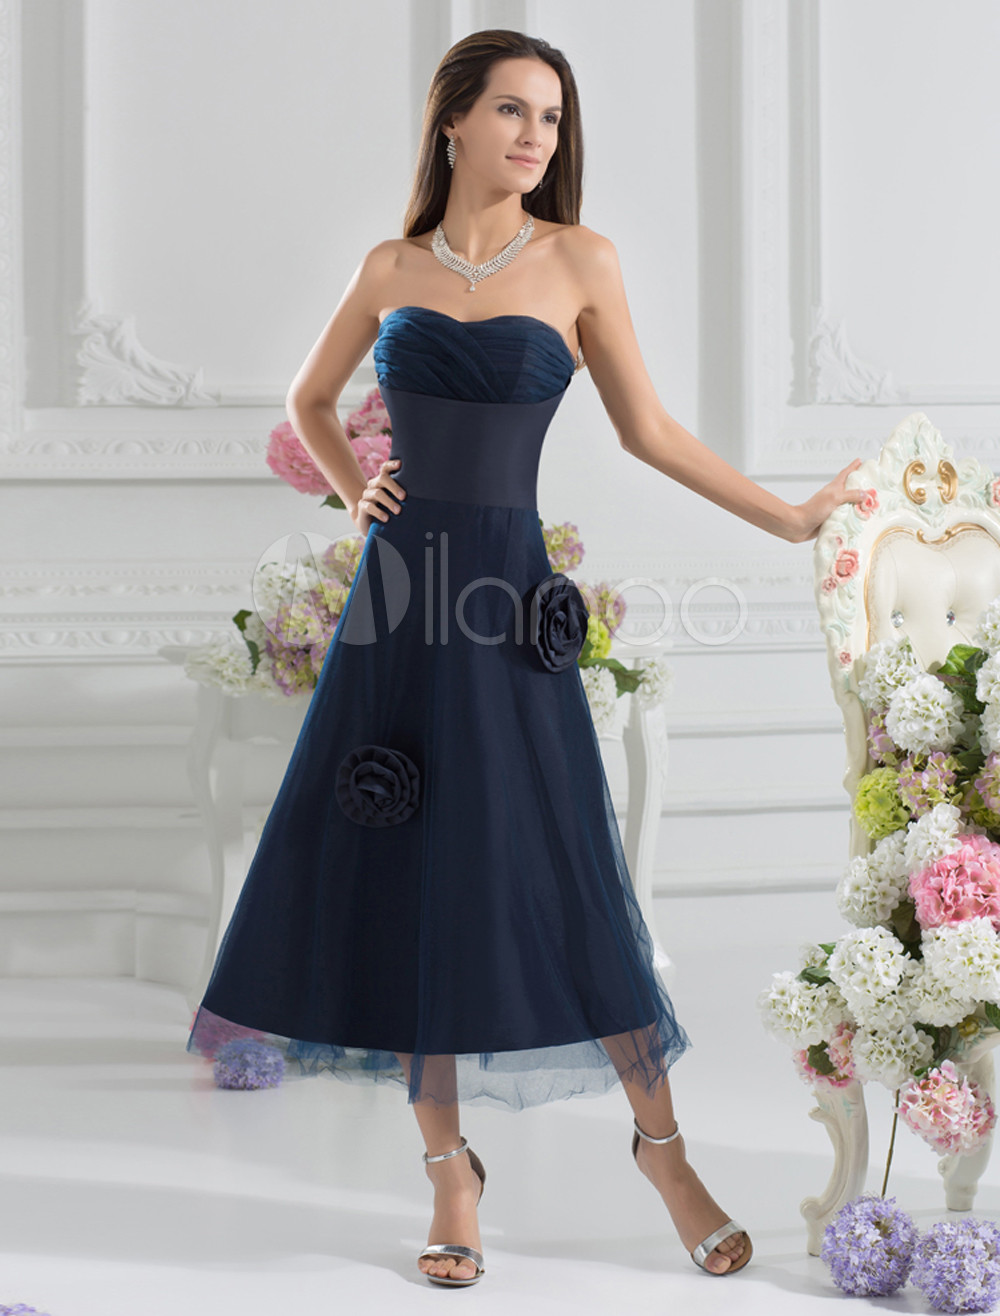 Grace A-line Dark Navy Tulle Flower Sweetheart Neck Bridesmaid Dress For Wedding